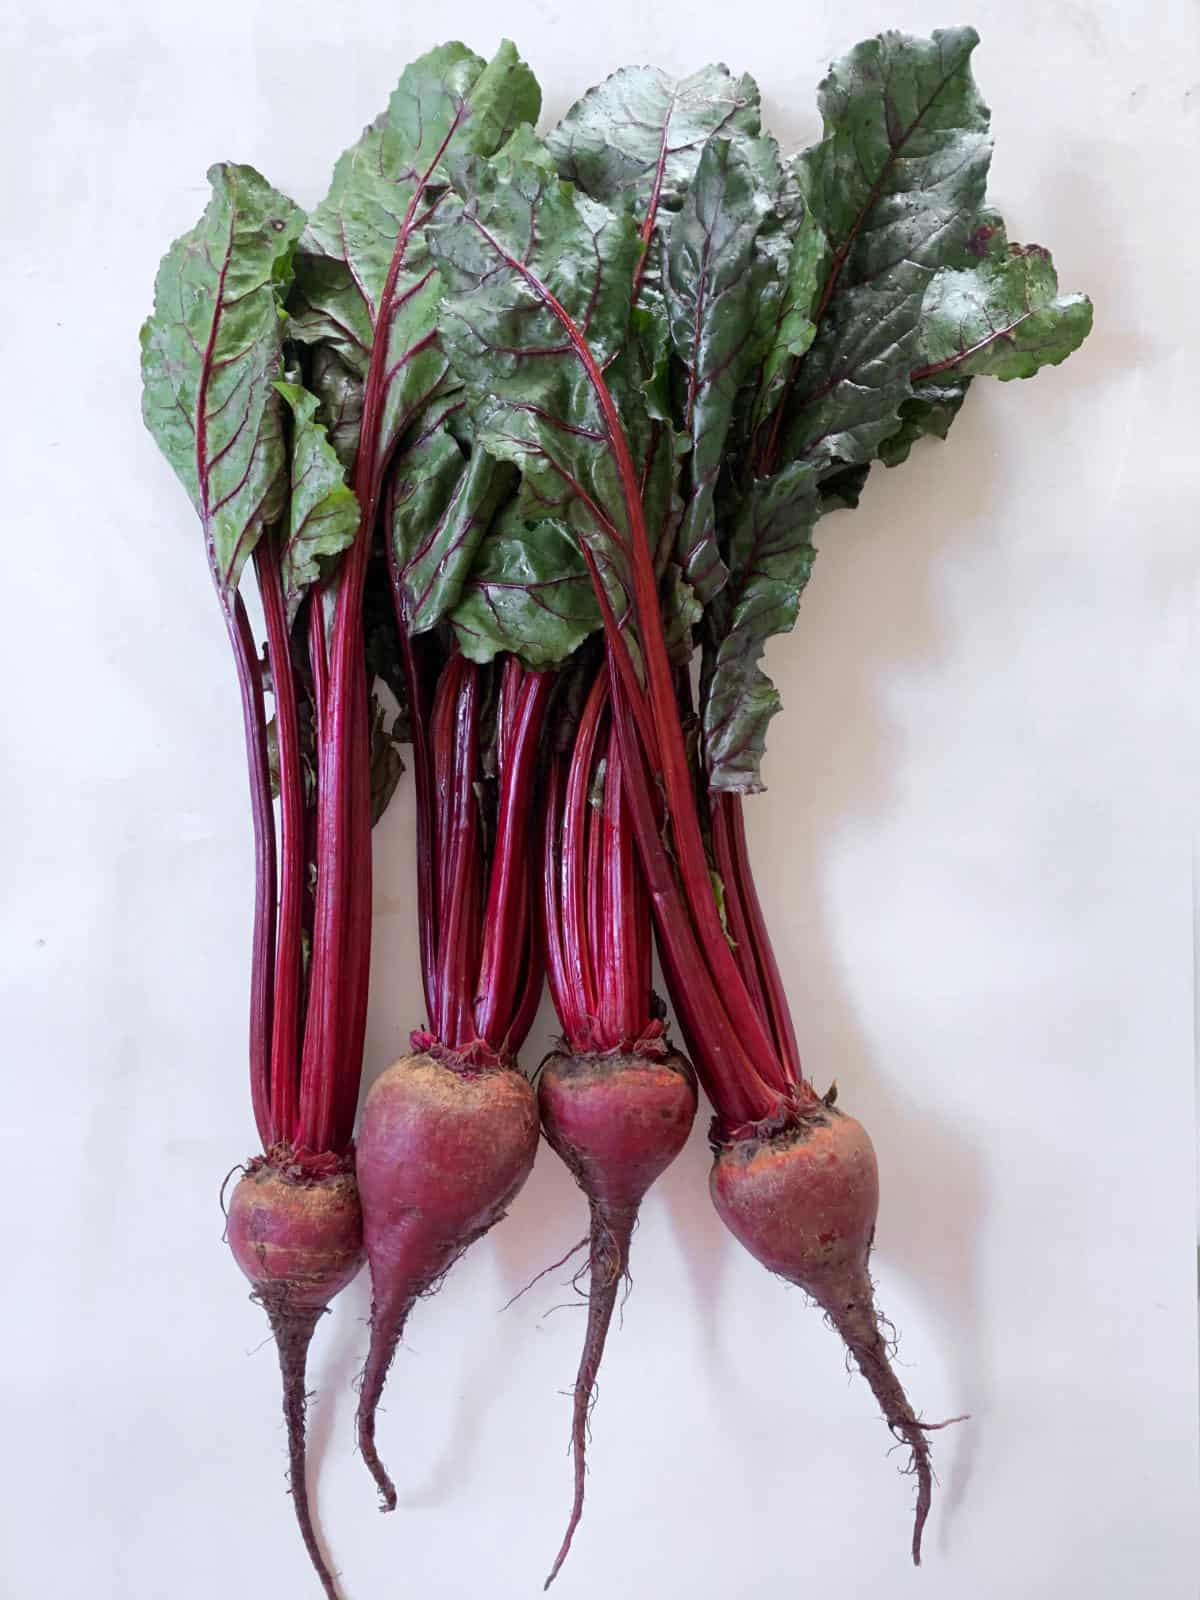 four fresh beetroots with leaves laid down on a white background